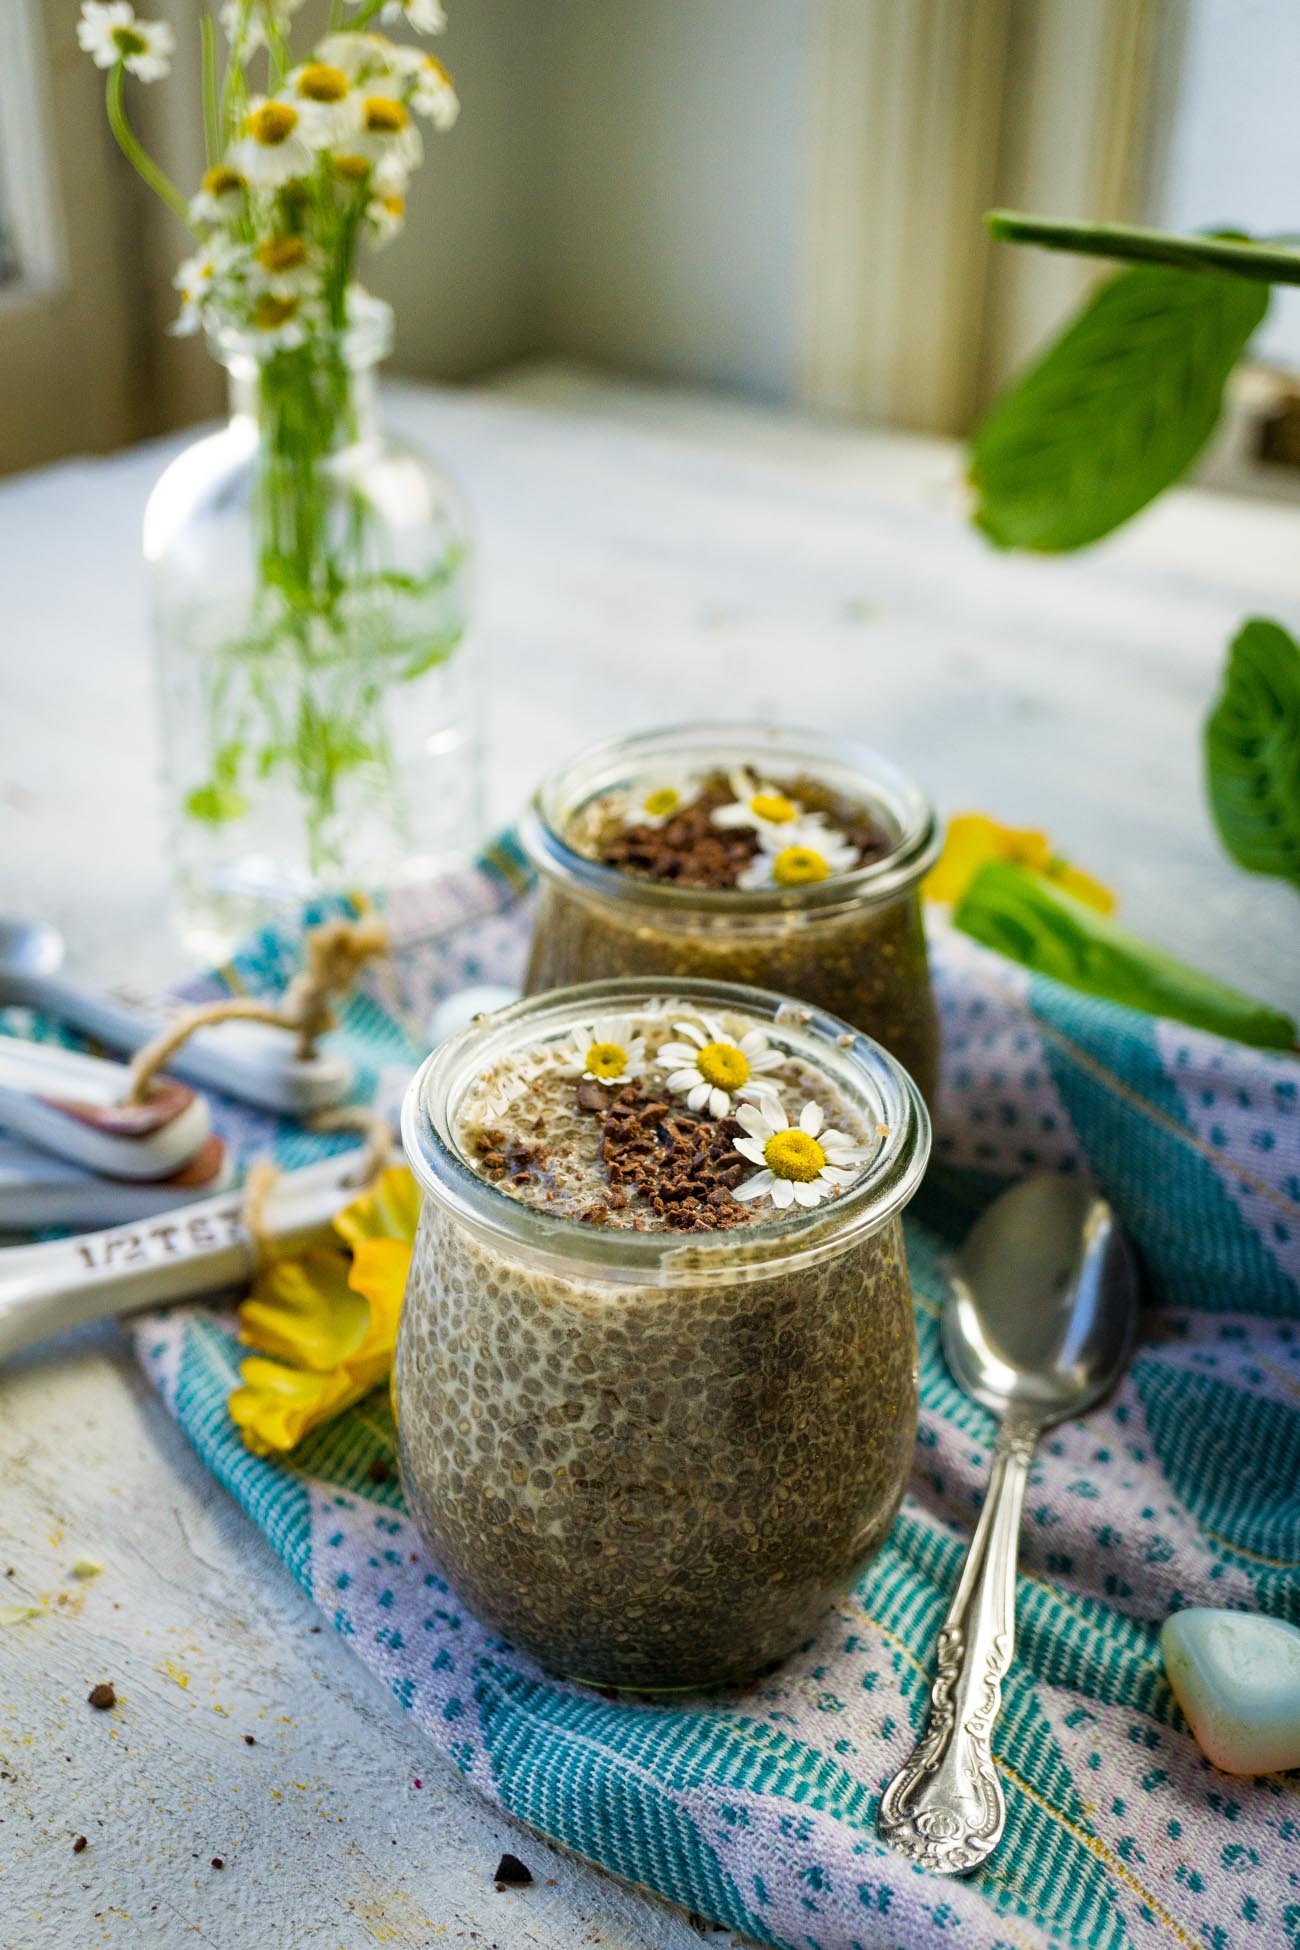 Chia pudding keto recipe